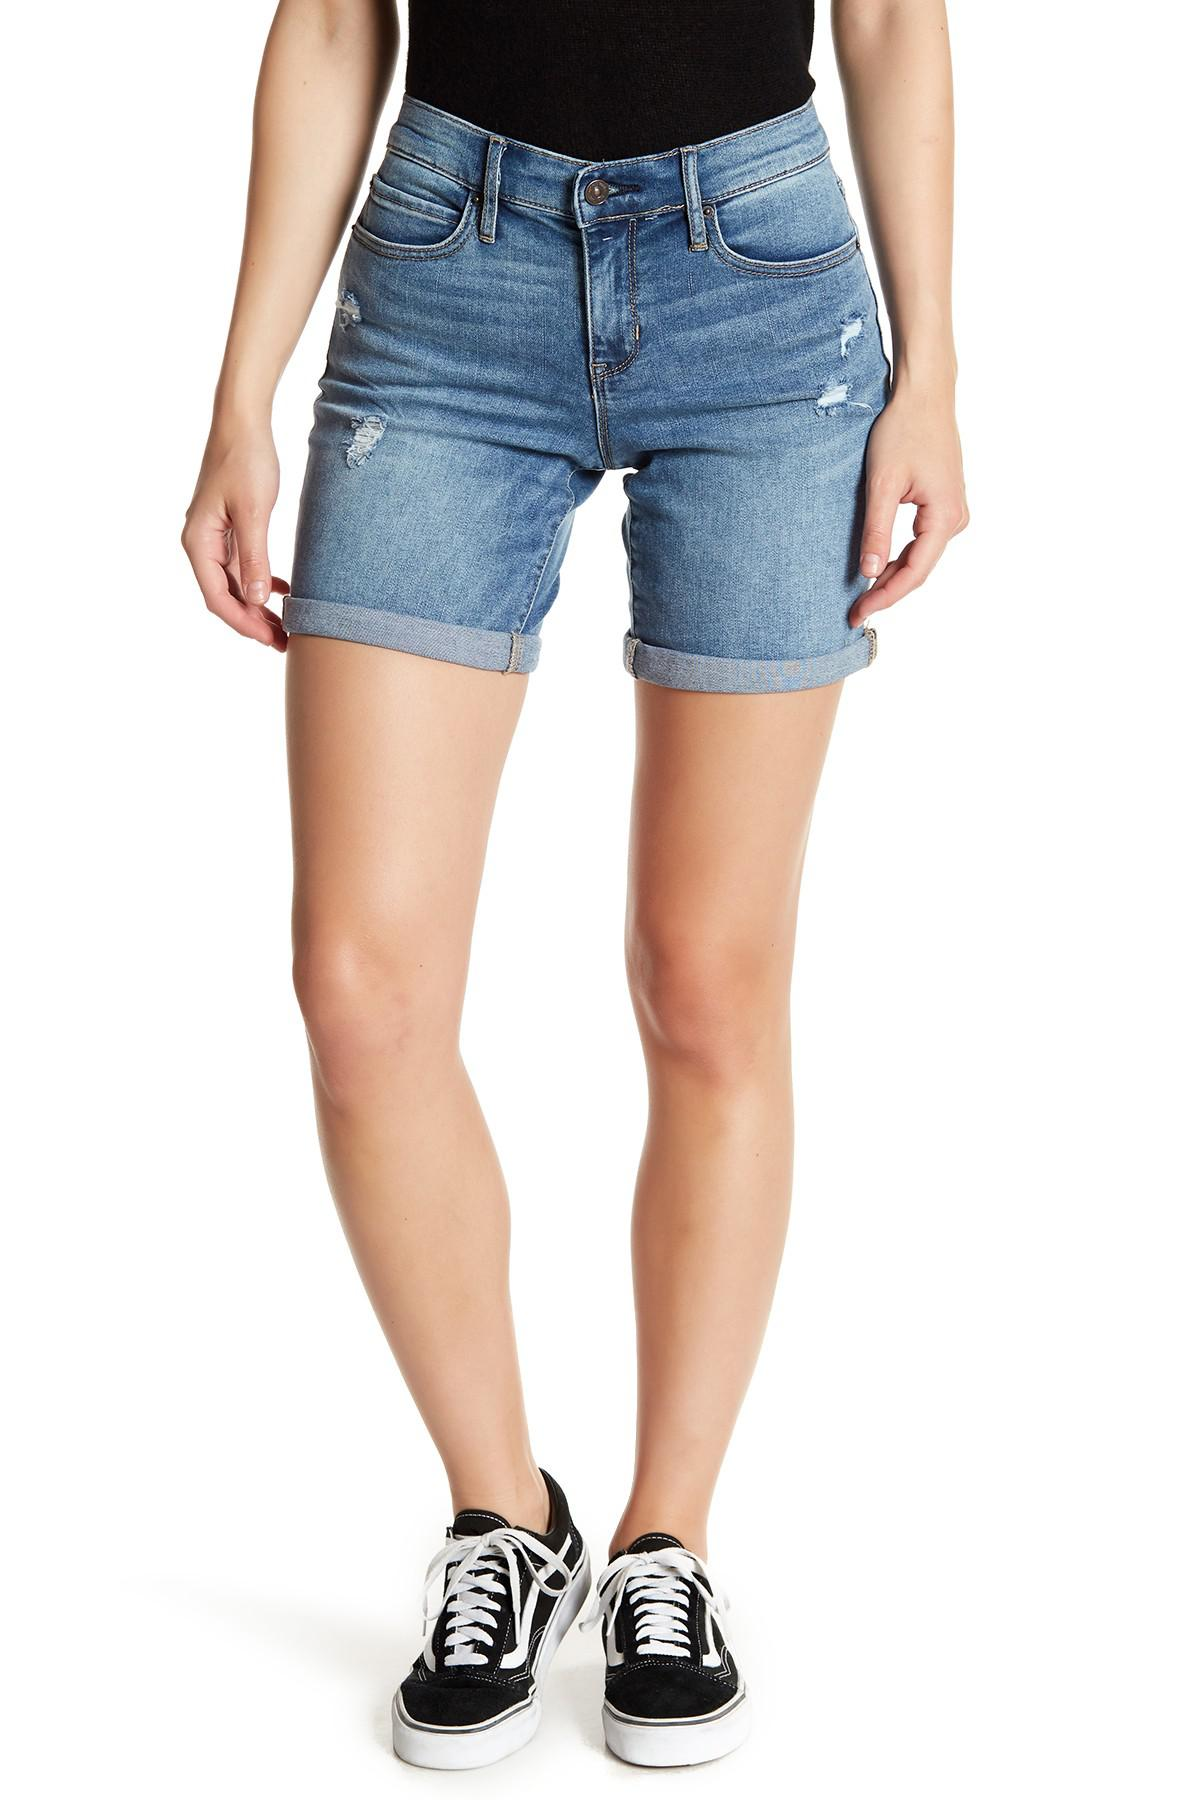 high-waisted shorts - Blue Nicole Miller Sale Classic 2018 Newest Free Shipping Latest Collections For Sale Online Sale Supply kM48I7j70w